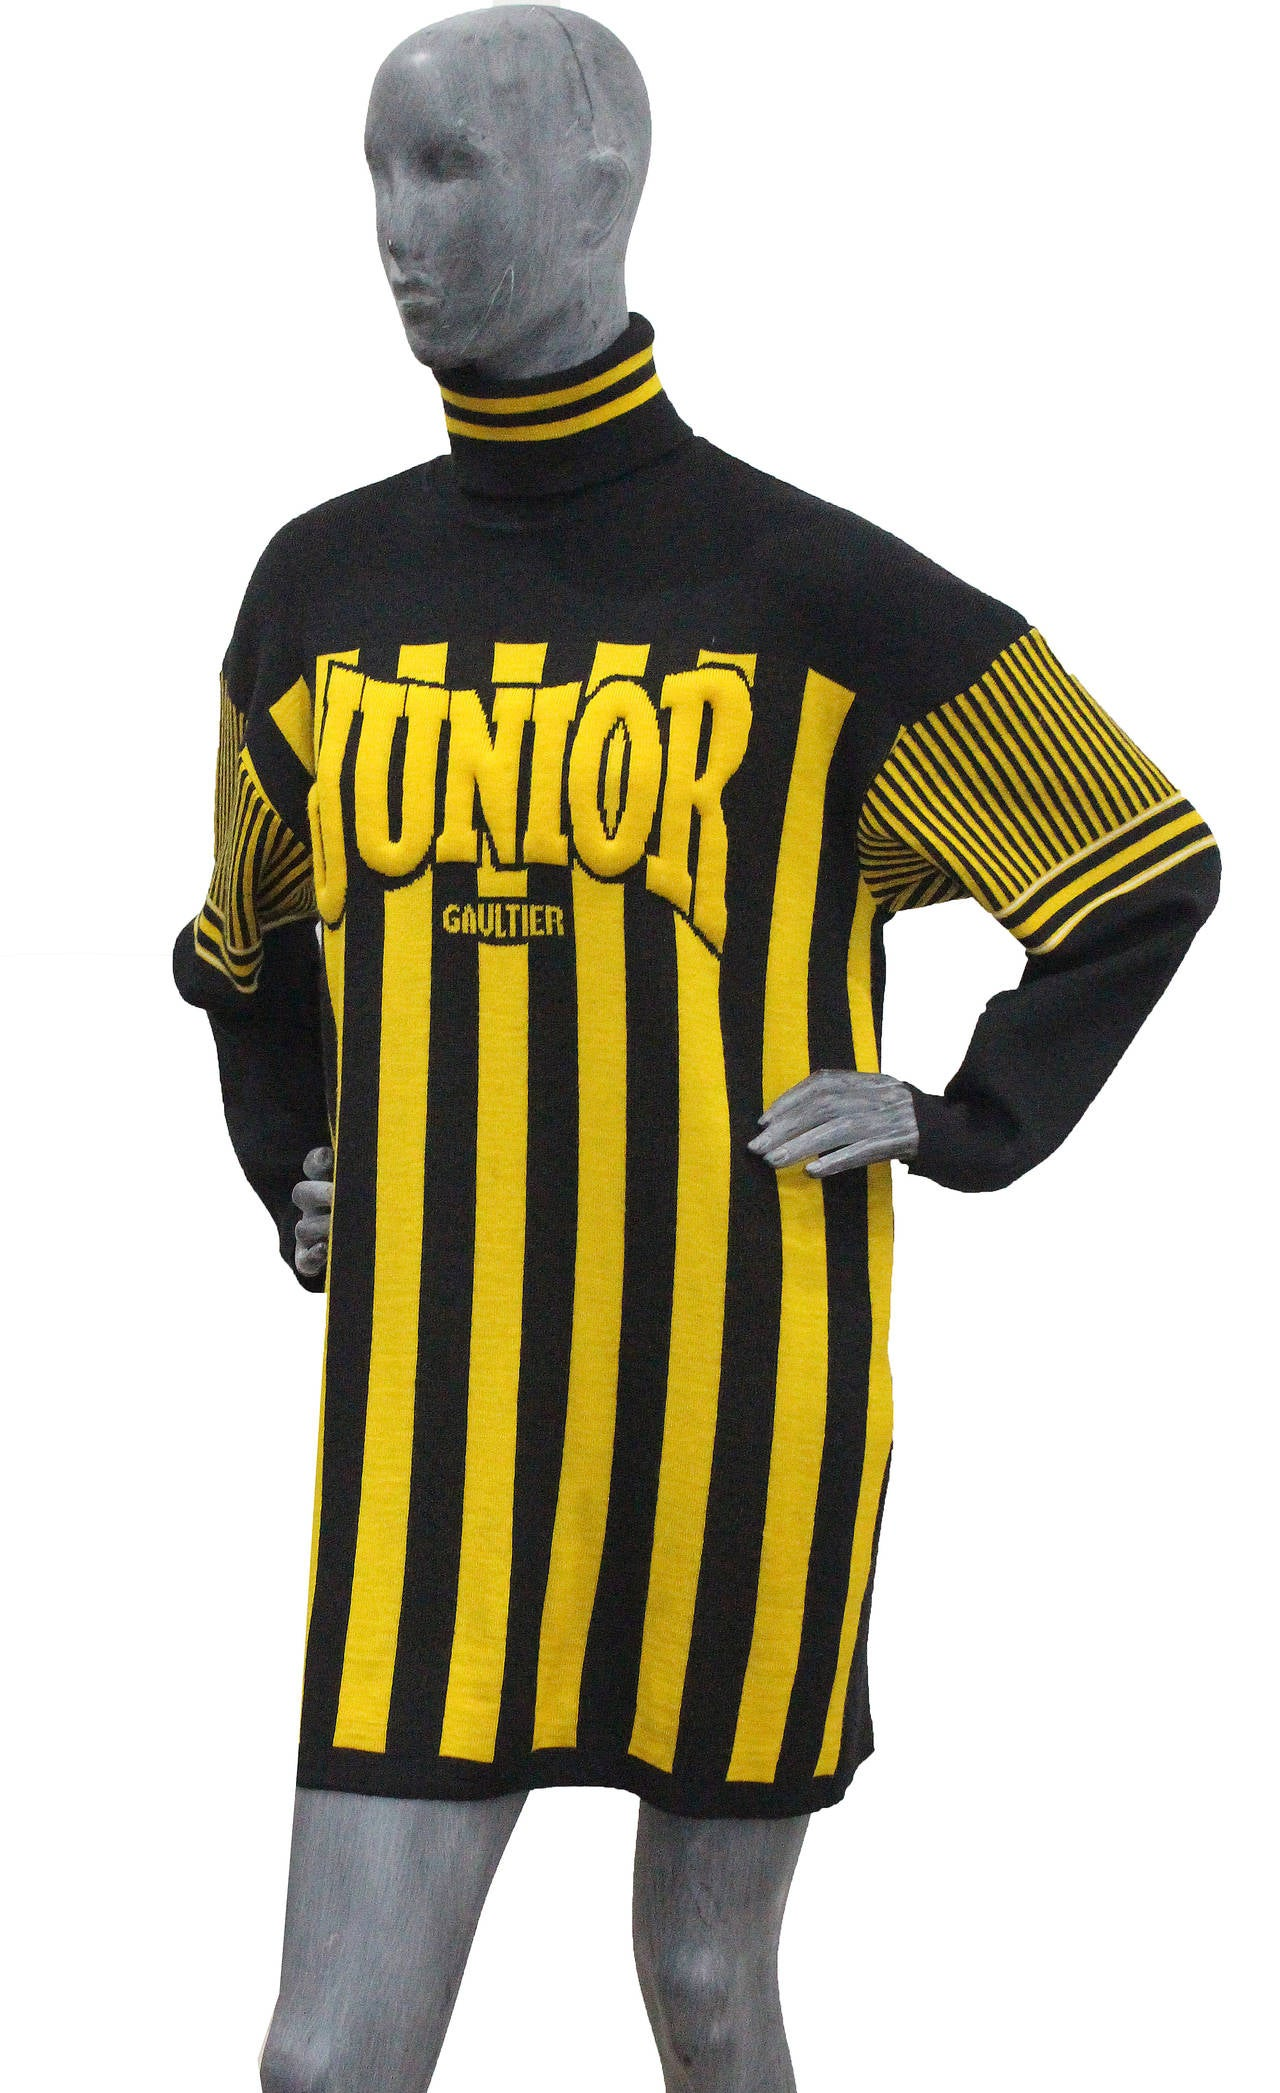 A rare knitted football sweater dress by Jean Paul Gaultier. The dress has yellow and black stripes, turtle neck and padded 'JUNIOR GAULTIER' on the bust.  Medium